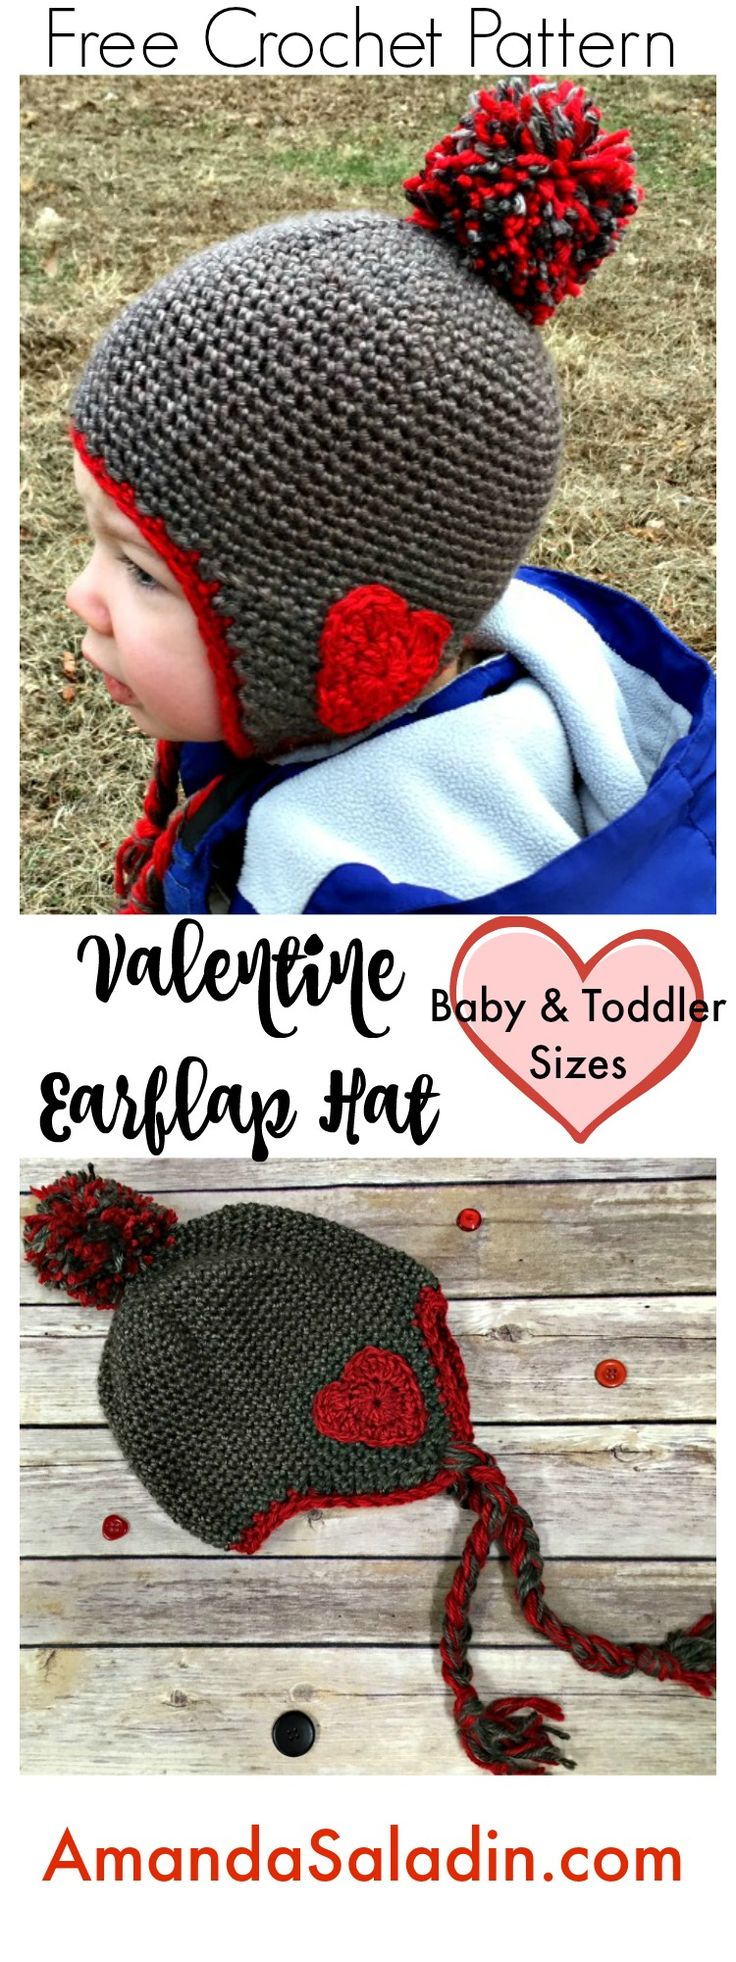 Free Crochet Pattern in Baby and Toddler sizes